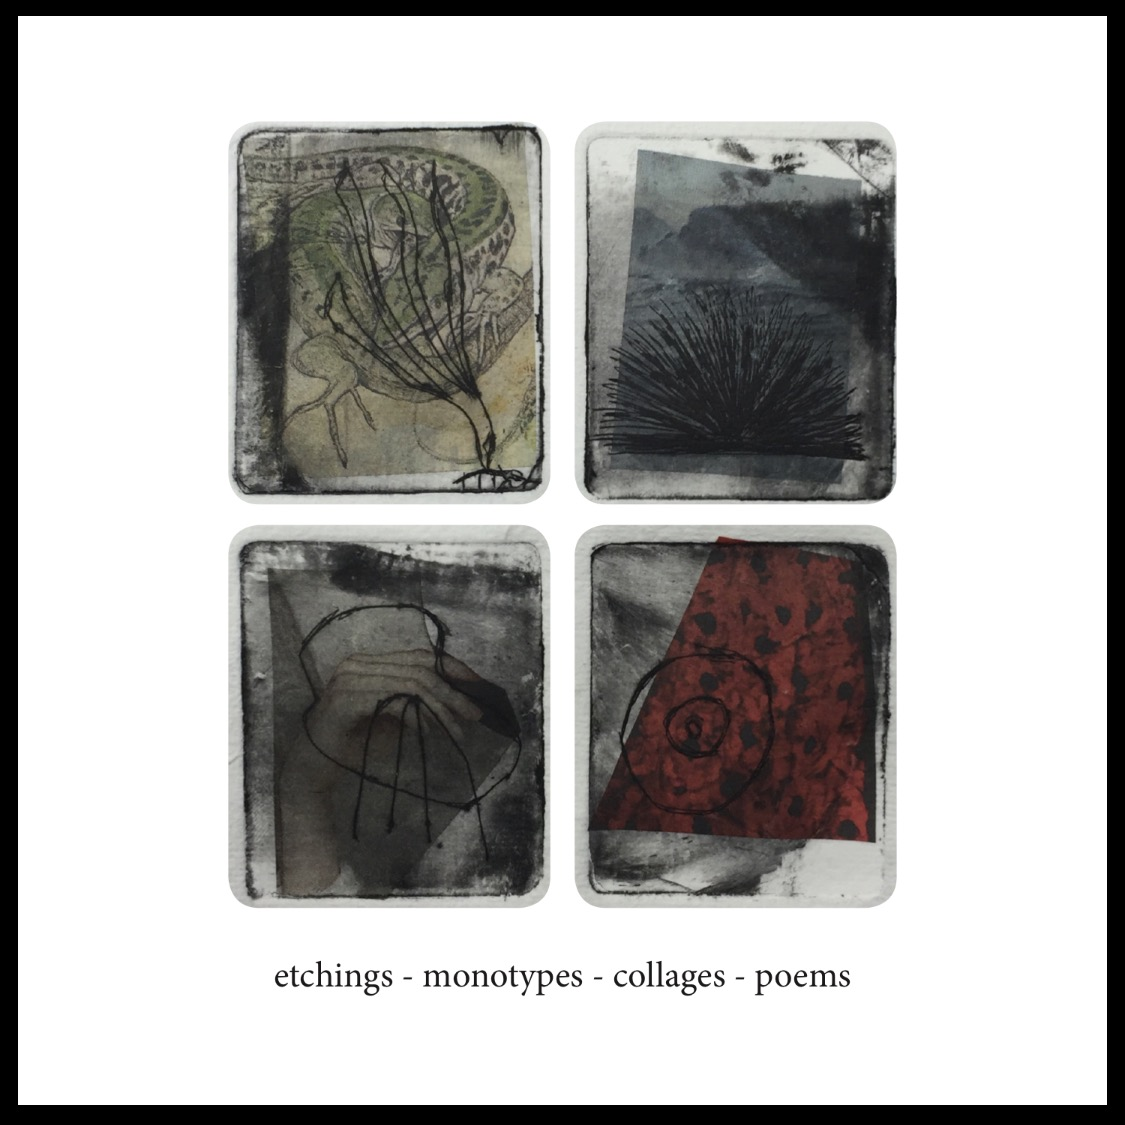 etchings, monotypes, collages, poems